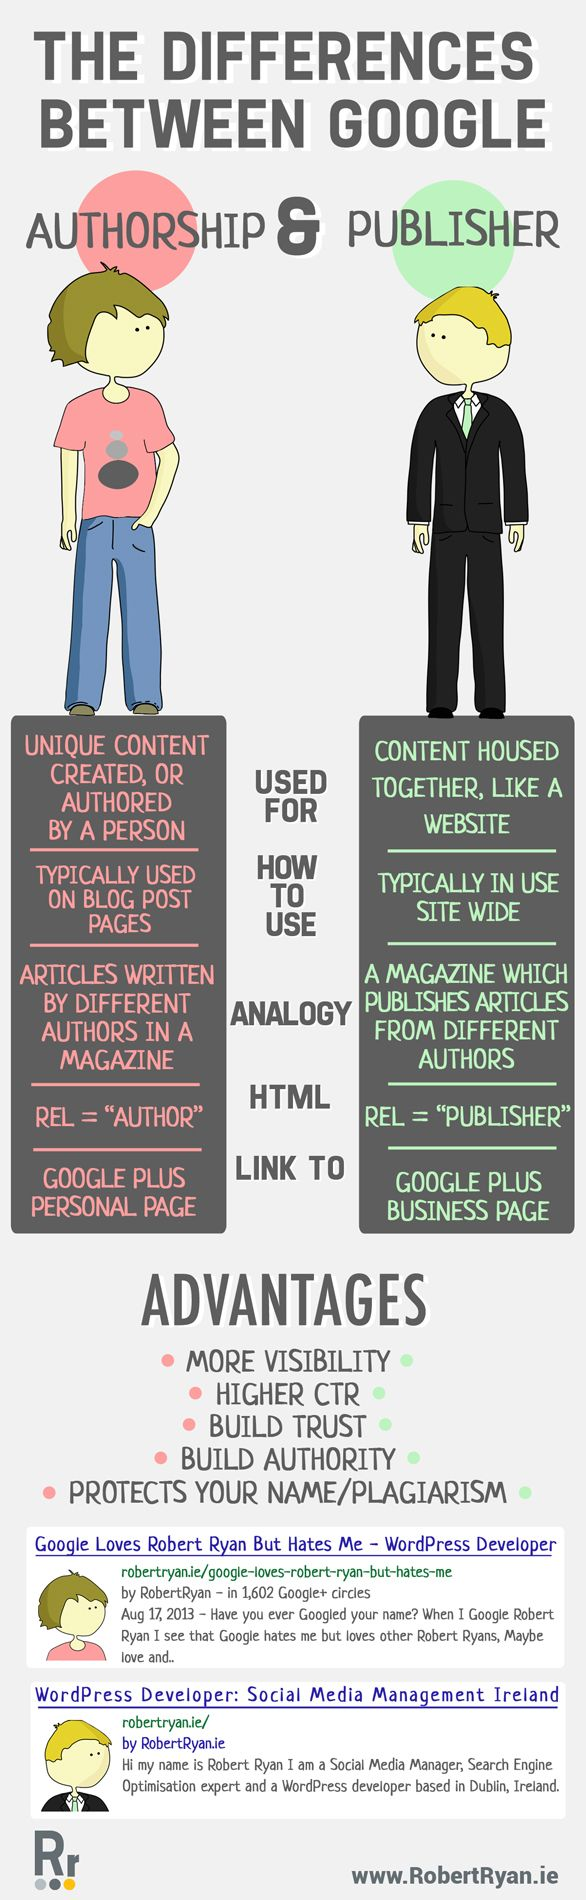 Google Authorship & Publisher – What's The Difference?